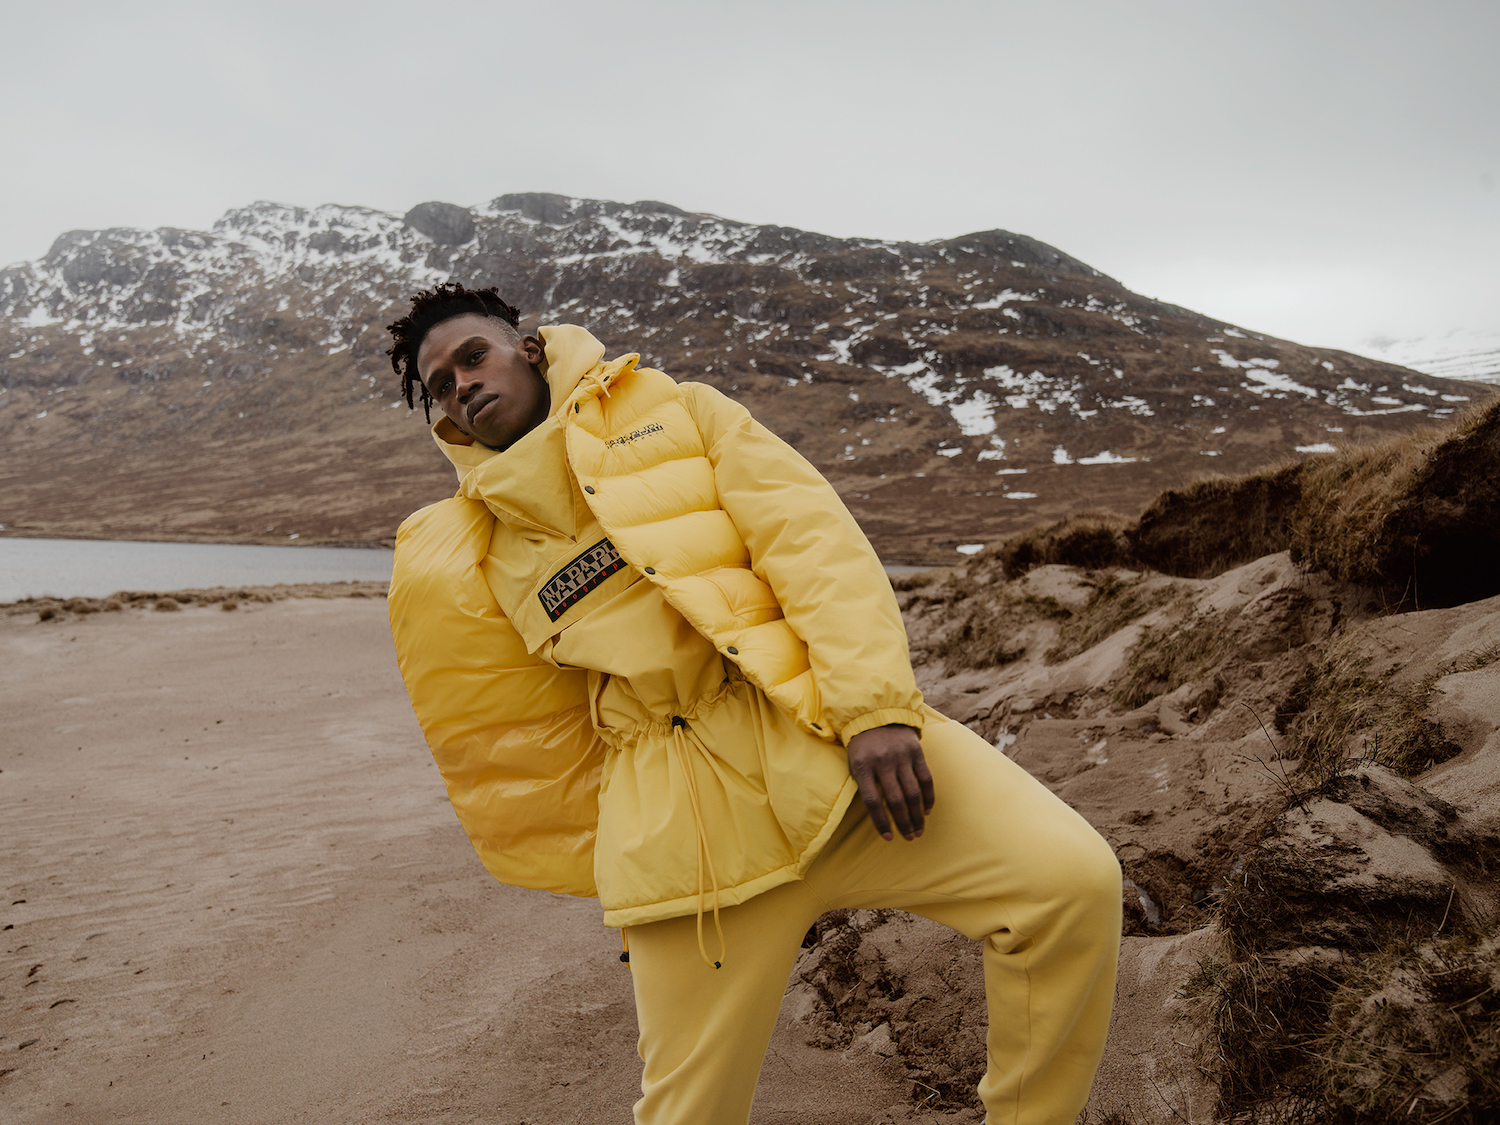 Check out the Latest from Napapijri on Urban Outfitters